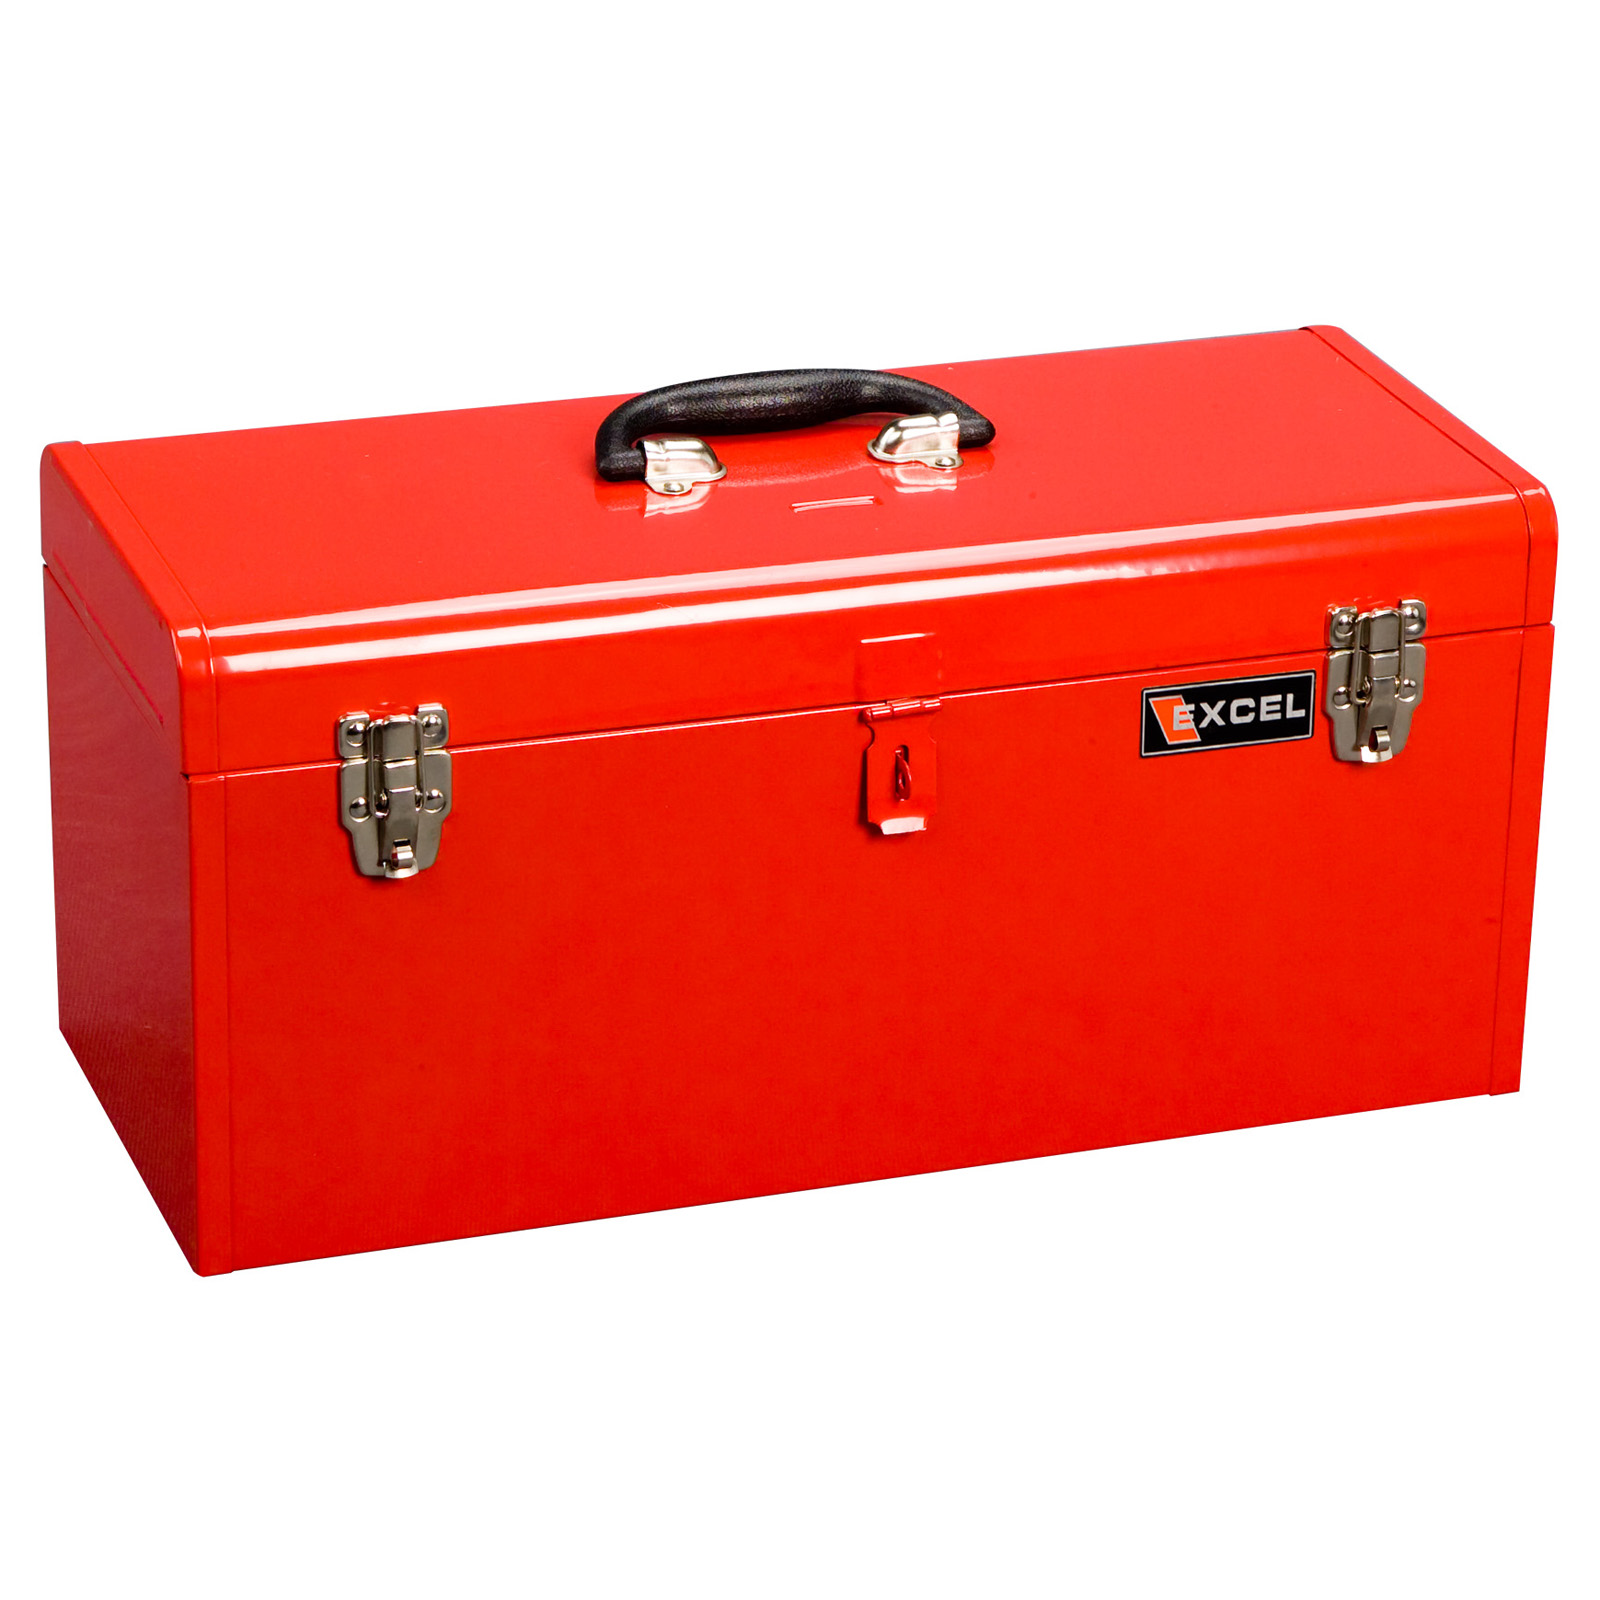 tool box clipart. metal portable tool box hayneedle clipart